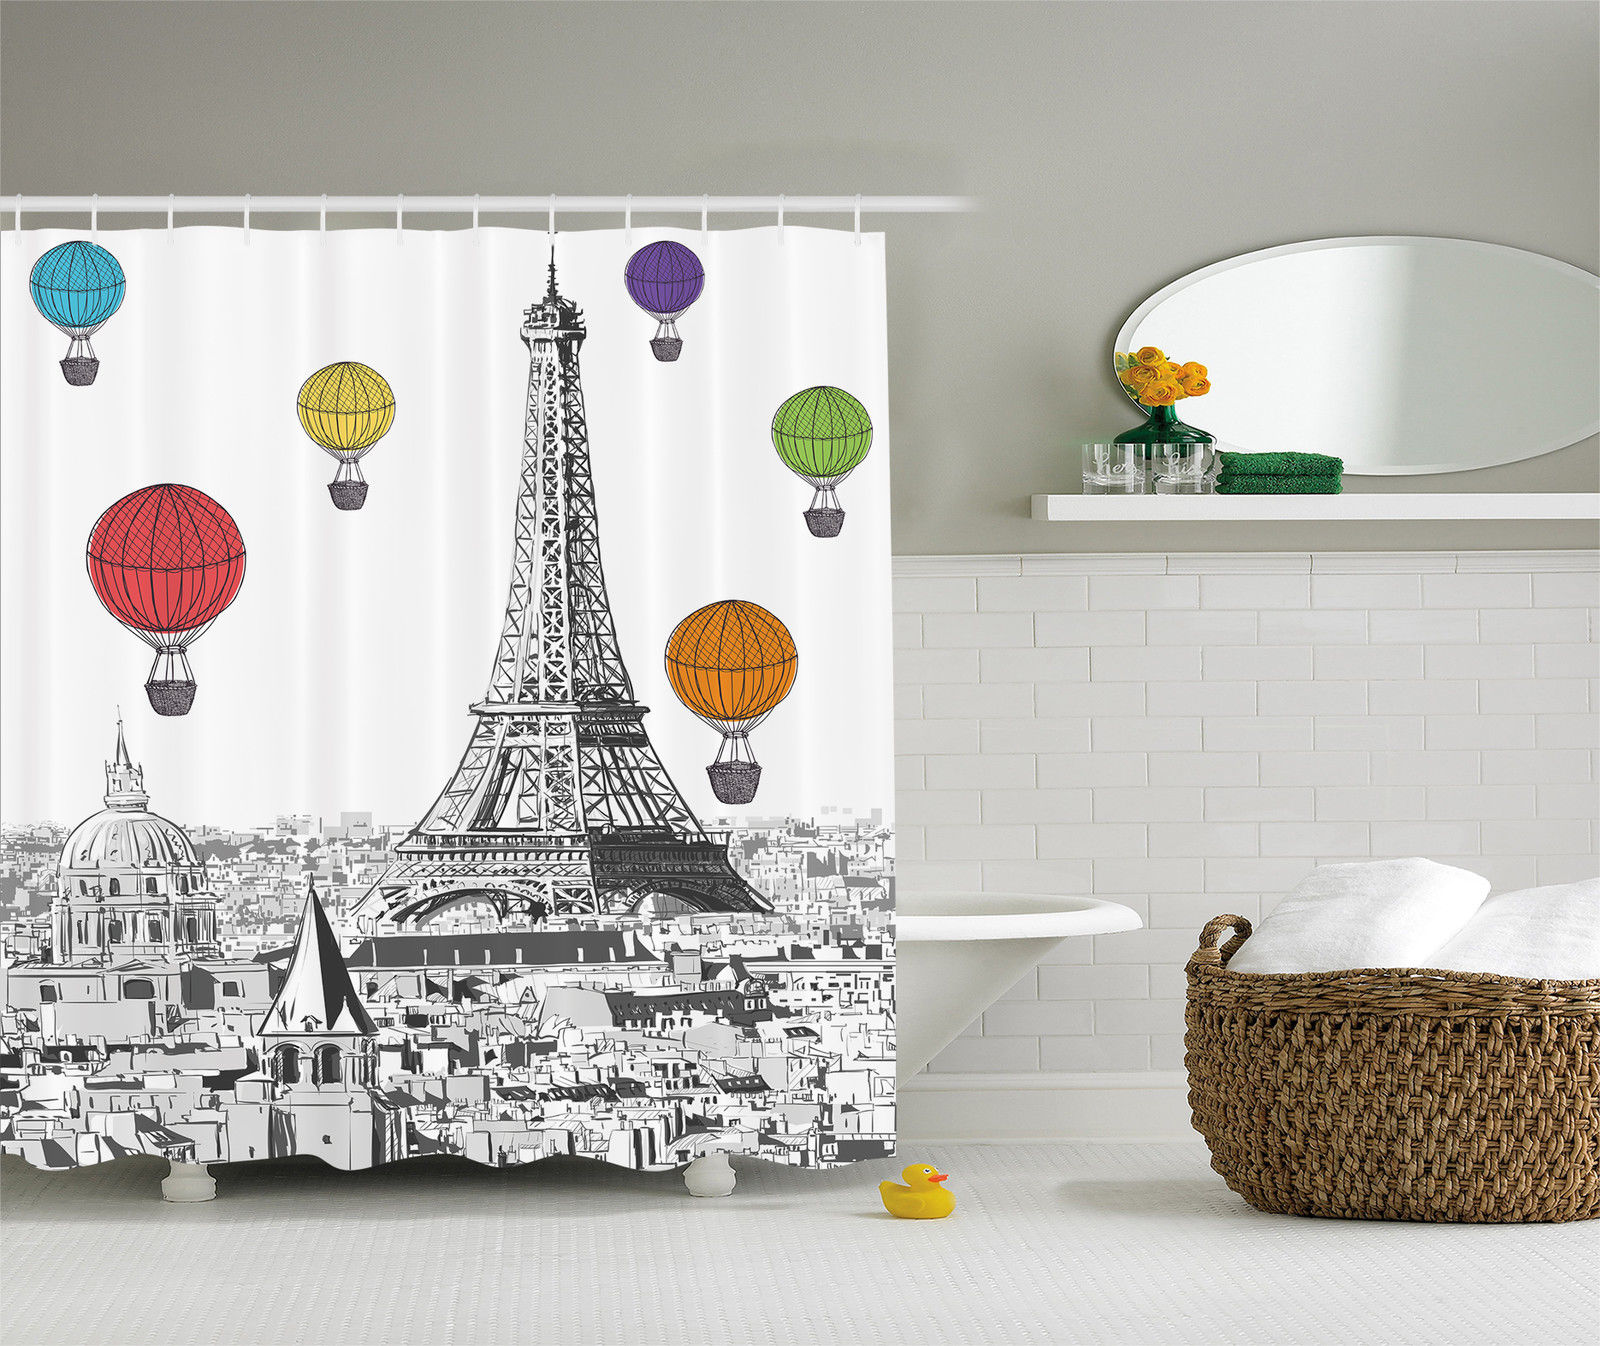 Air Curtain Shower Paris Eiffel Tower And Notre Dame Colorful Air Balloon Shower Curtain Extra Long